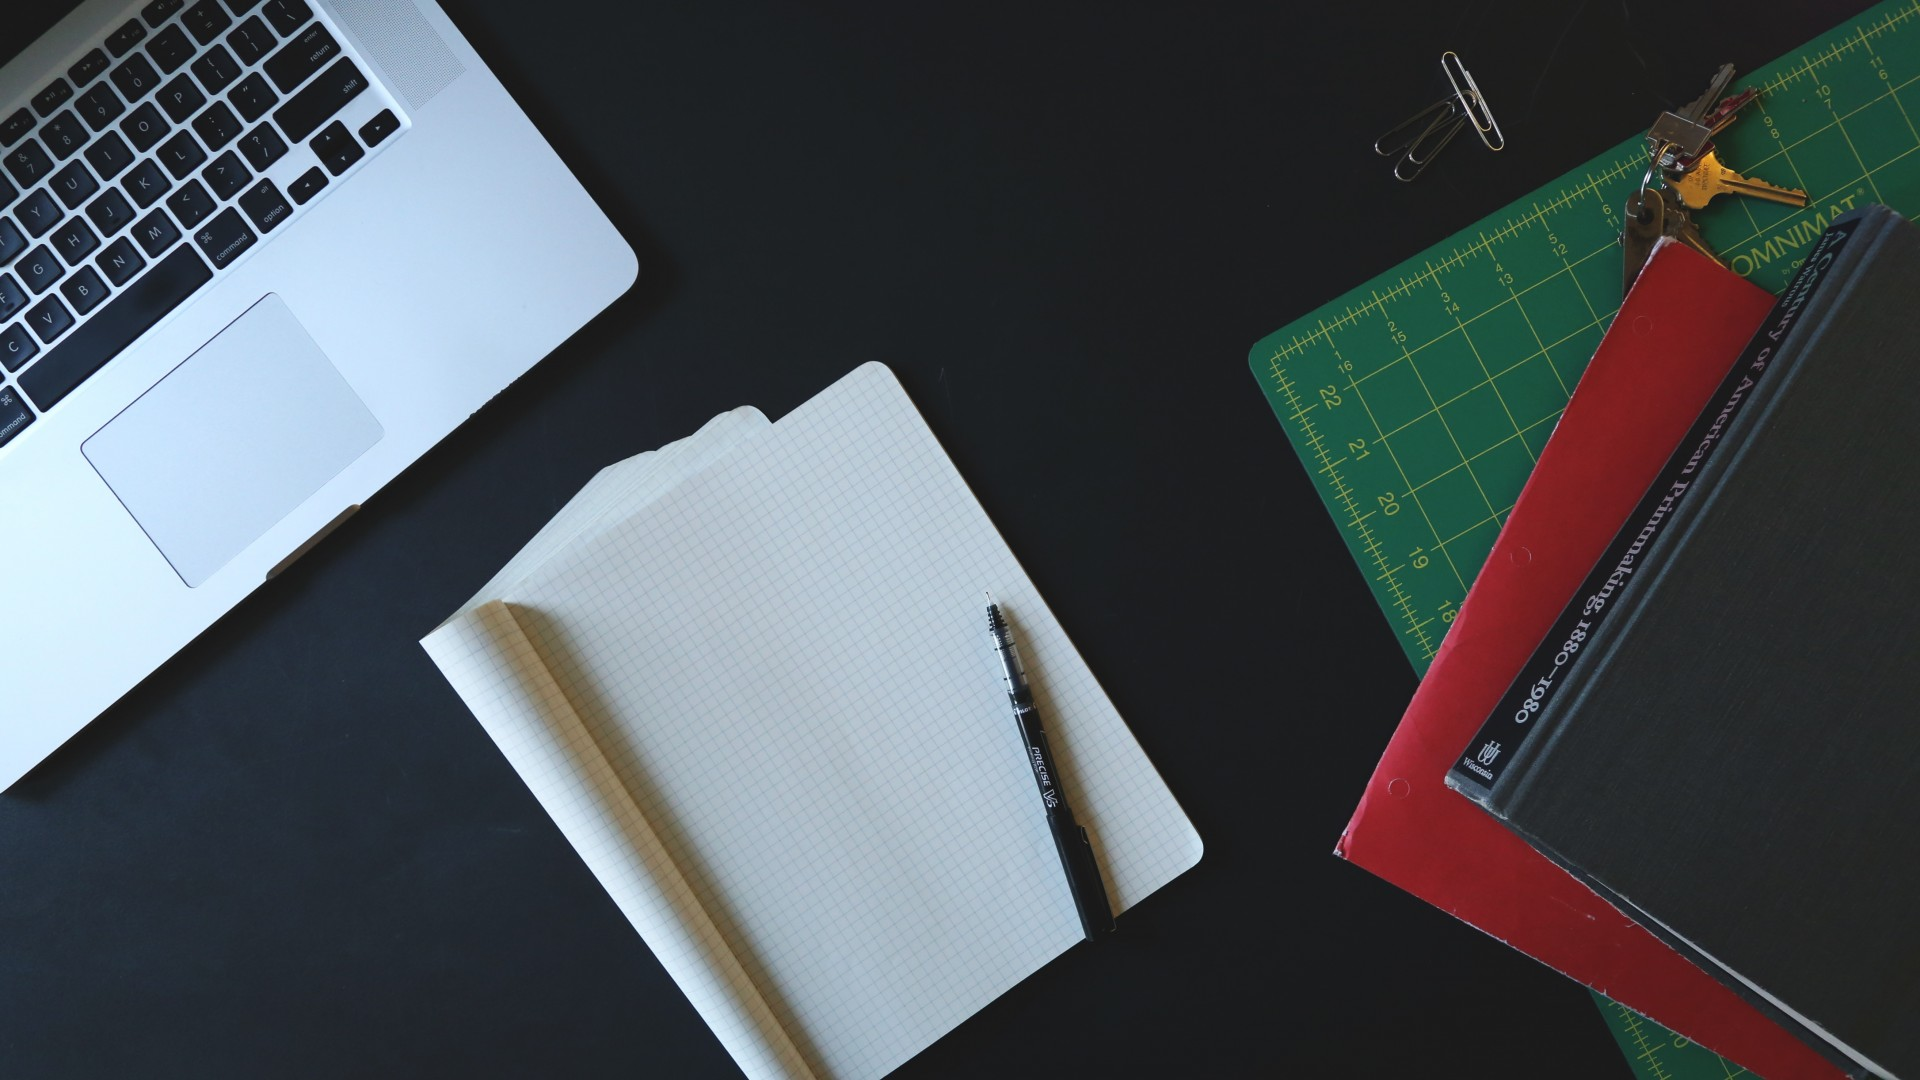 startup-note-pen-files-stationery-objects-laptop-hd-wallpapers-1920x1080